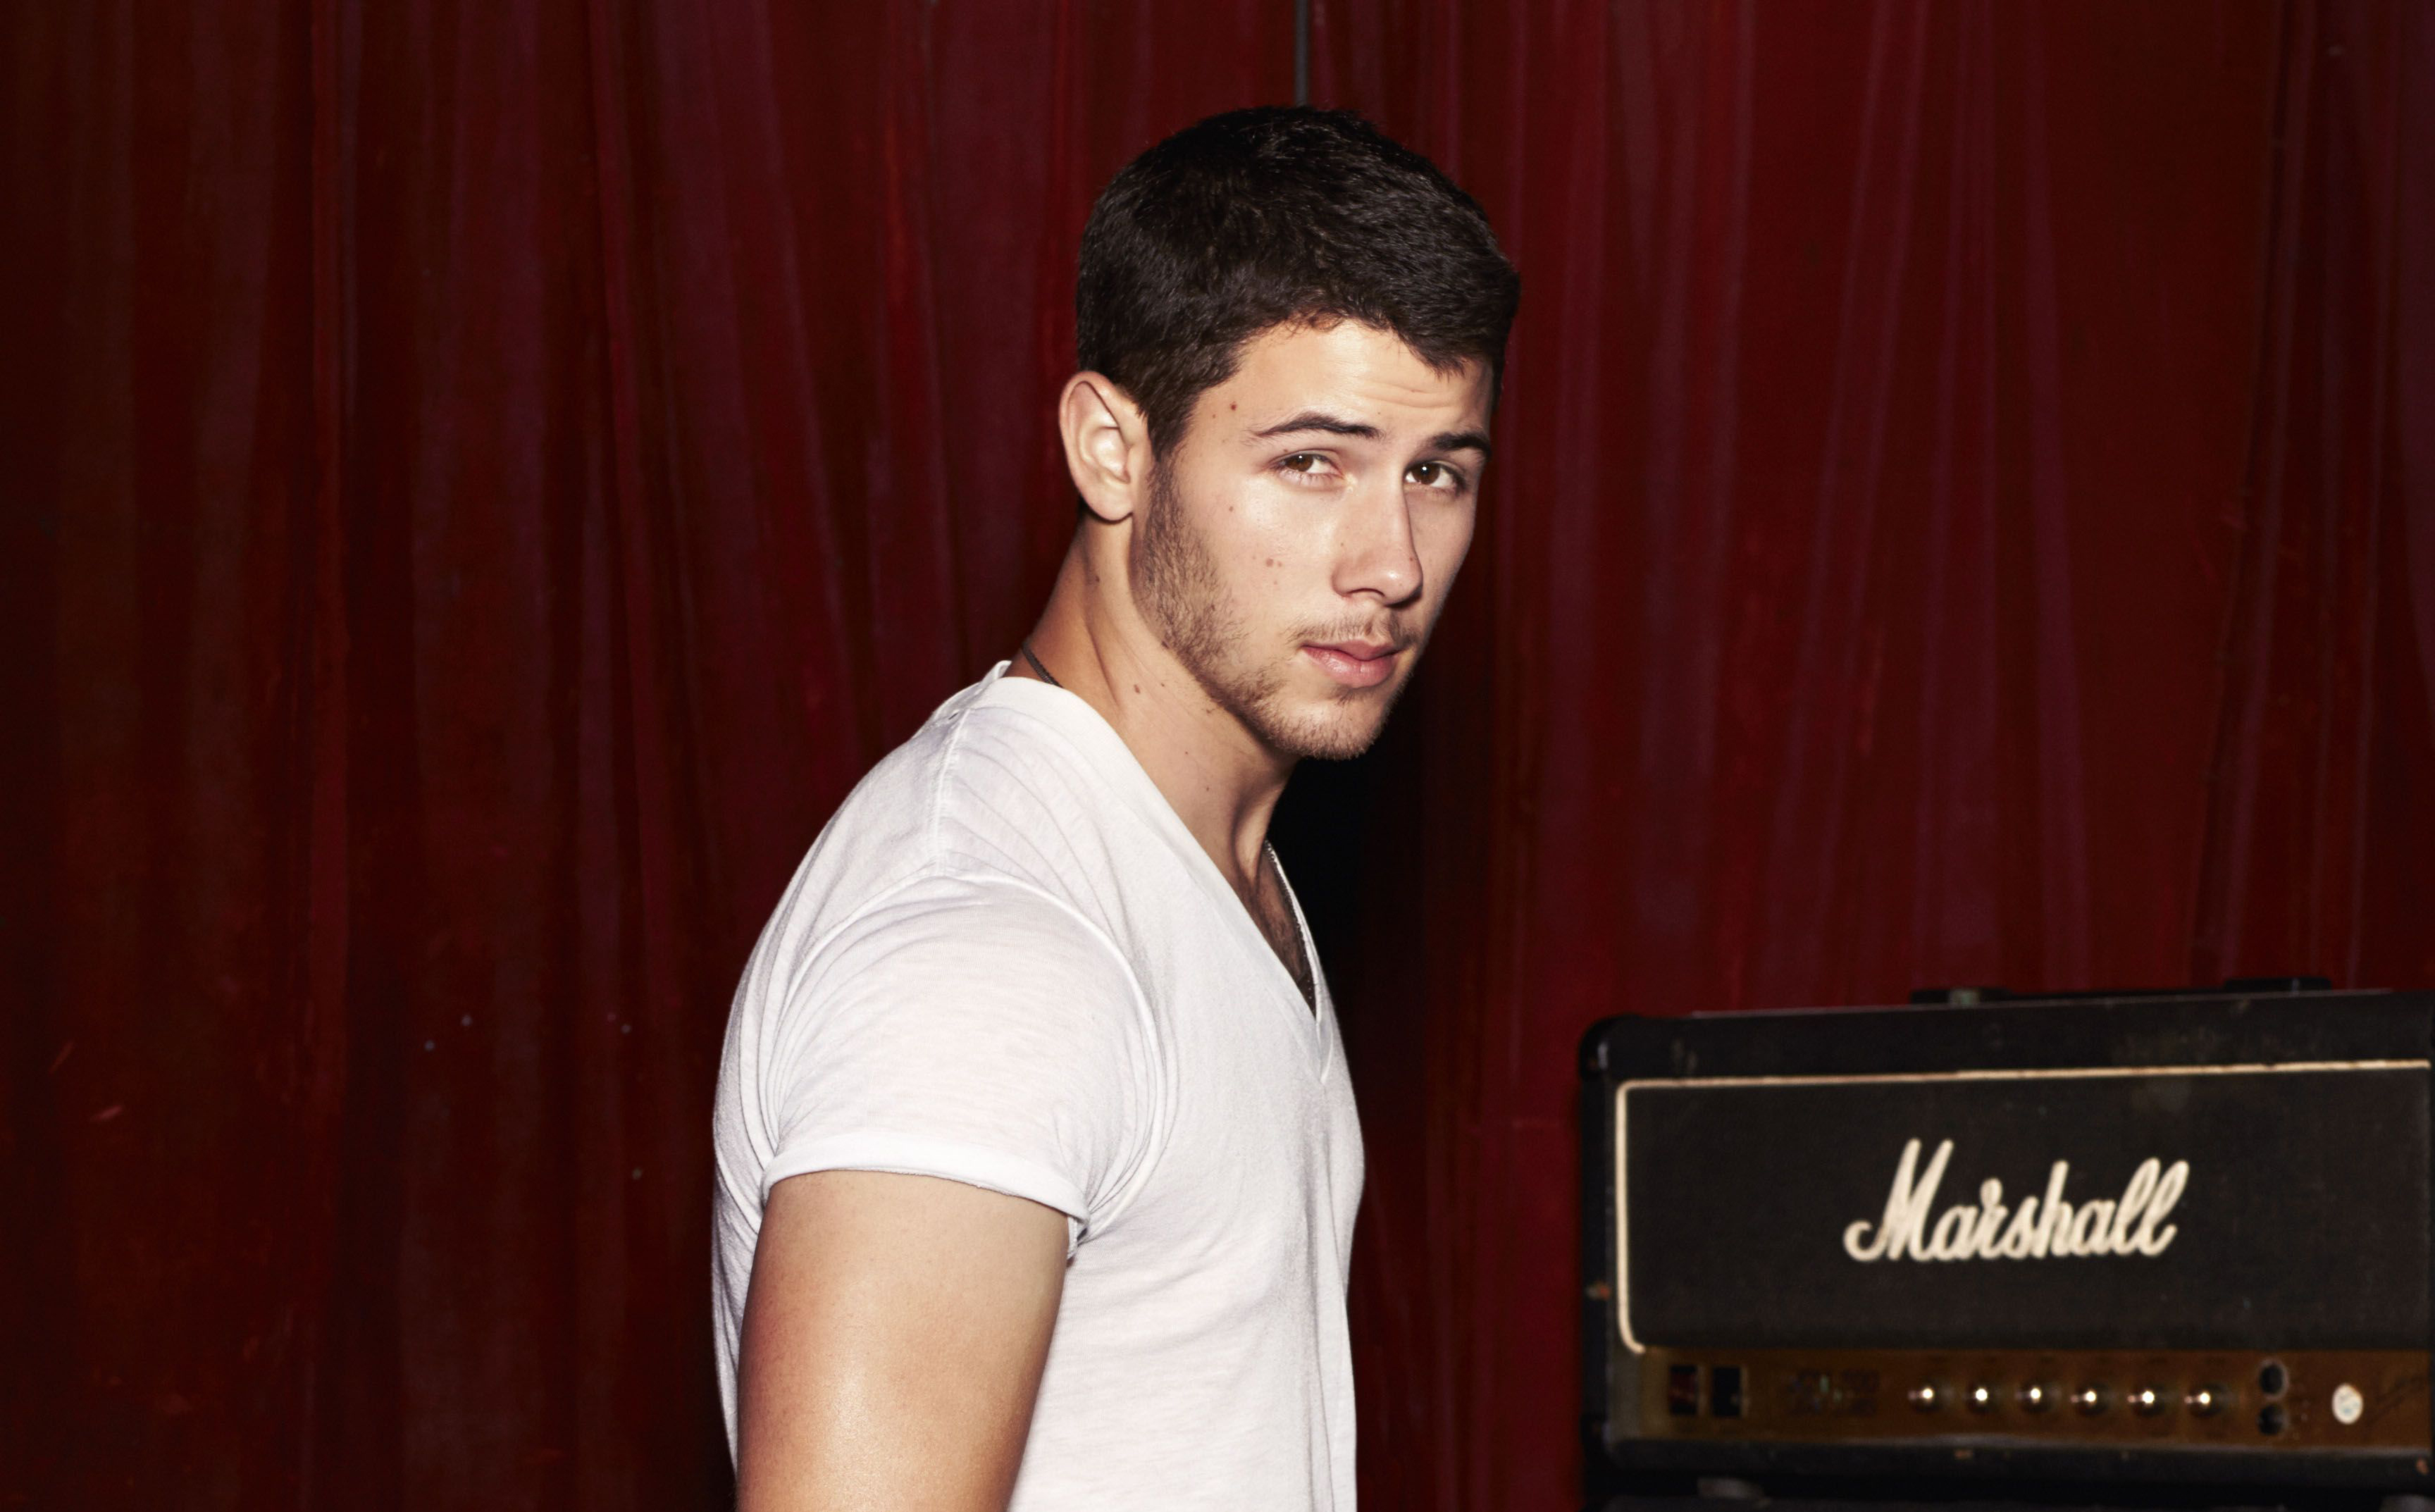 nick jonas songs 2018 download